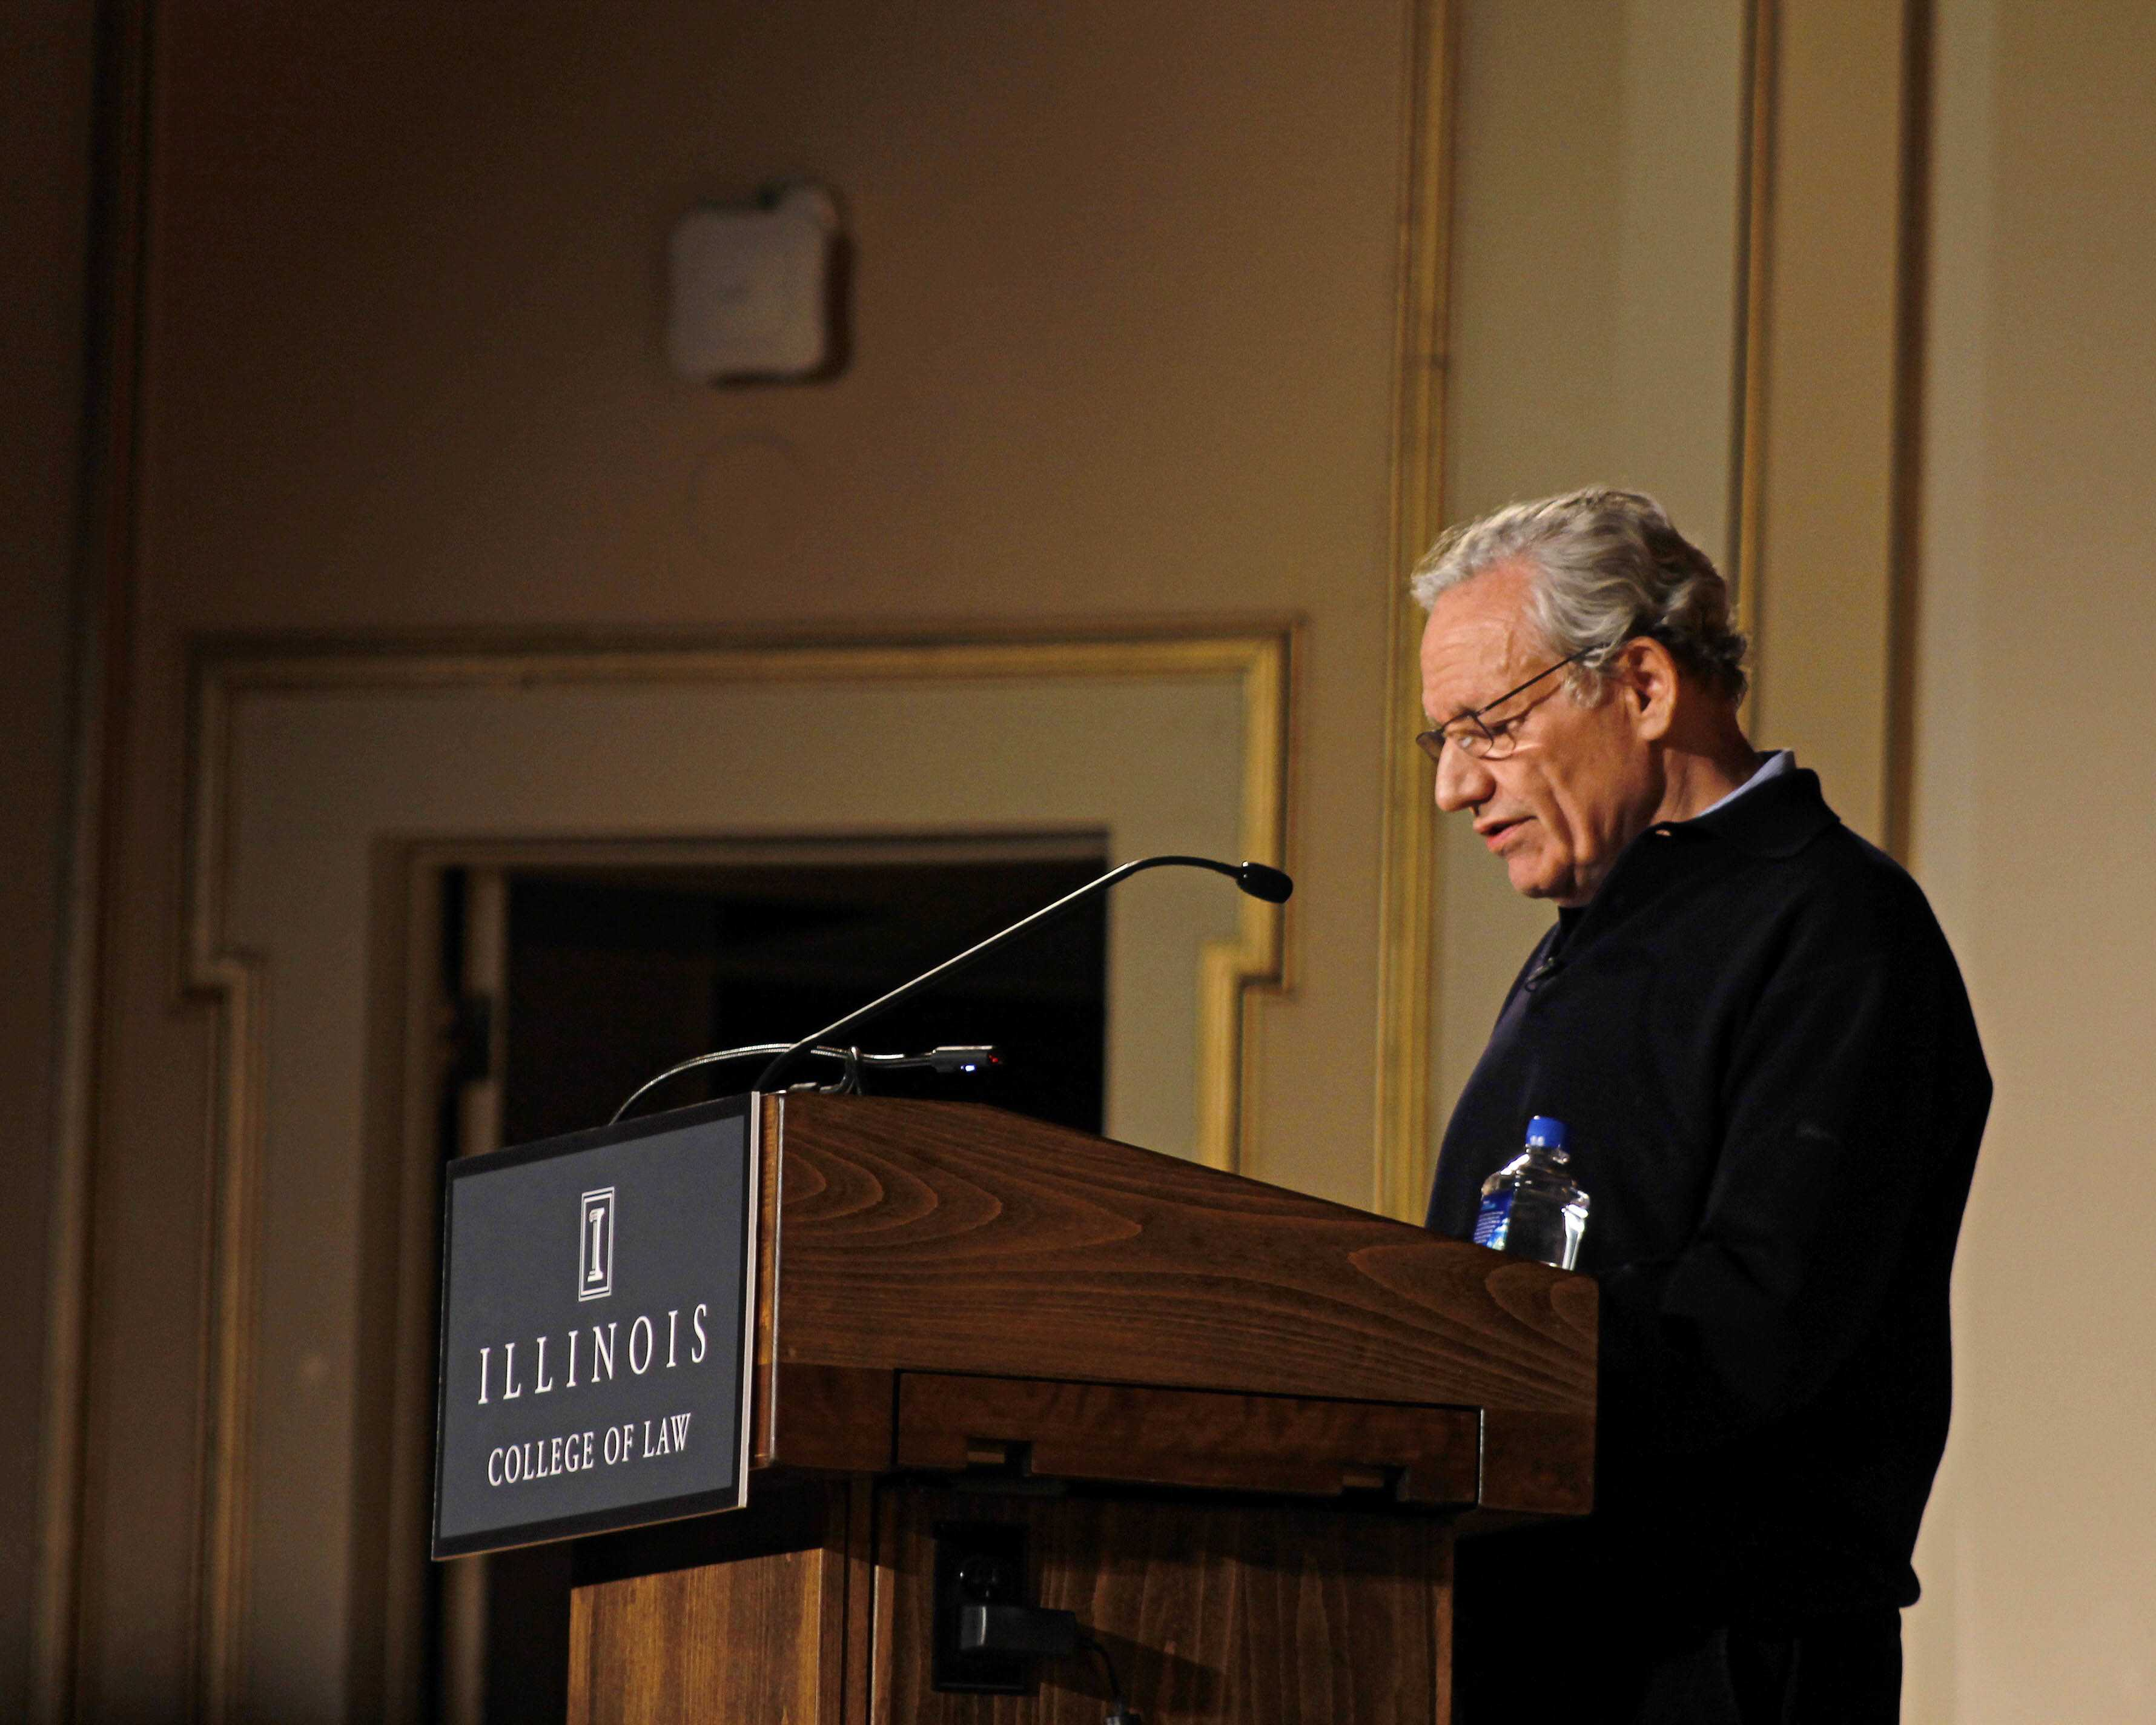 Pulitzer Prize Winning Reporter, Bob Woodward, giving the inaugural speech for